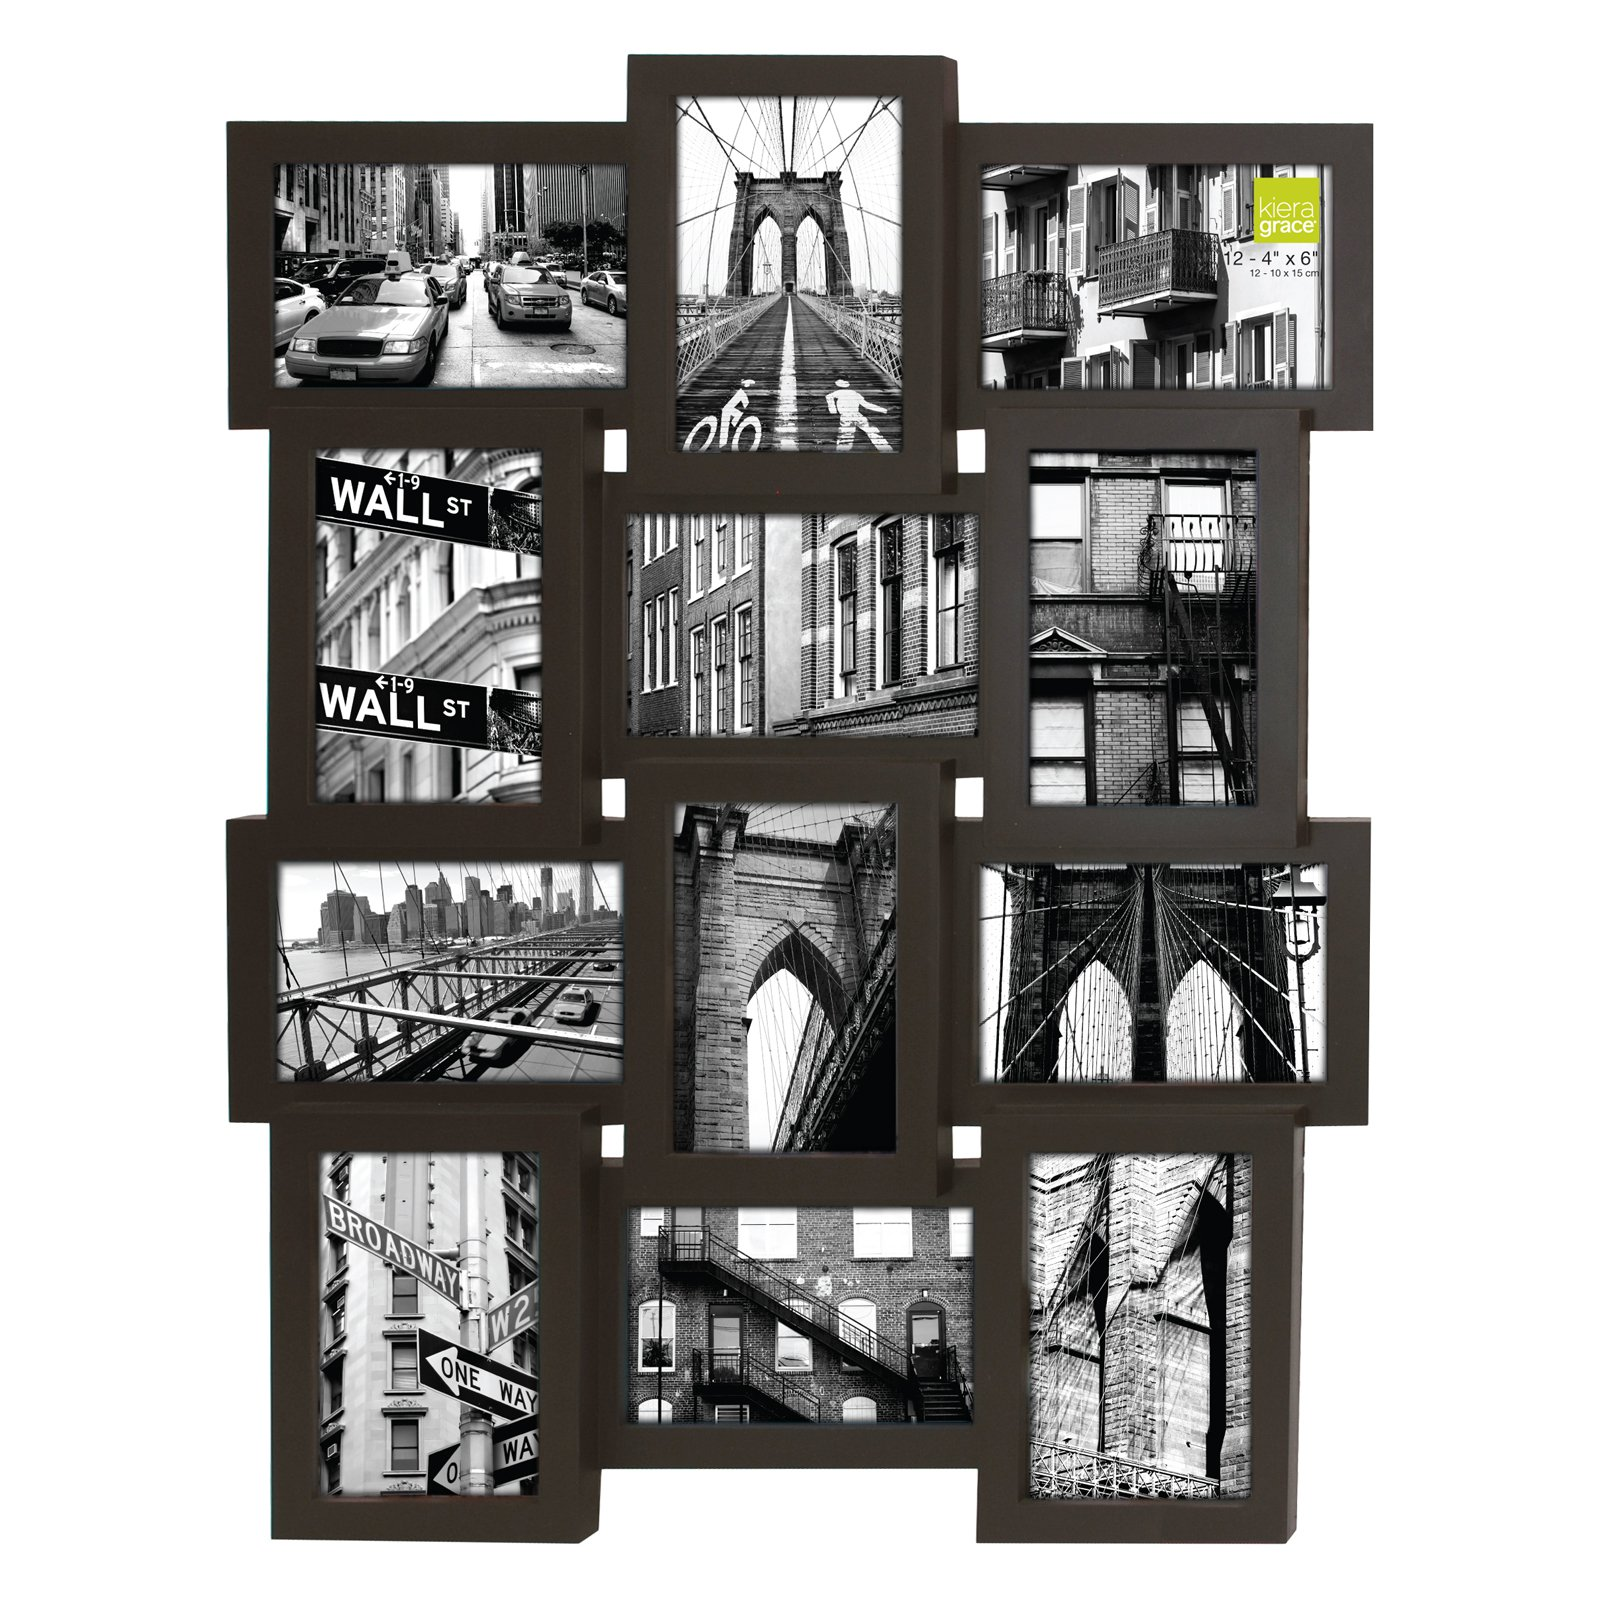 AZ Trading Array Collage Wall Frame Holds 12 Photos by nexxt Design